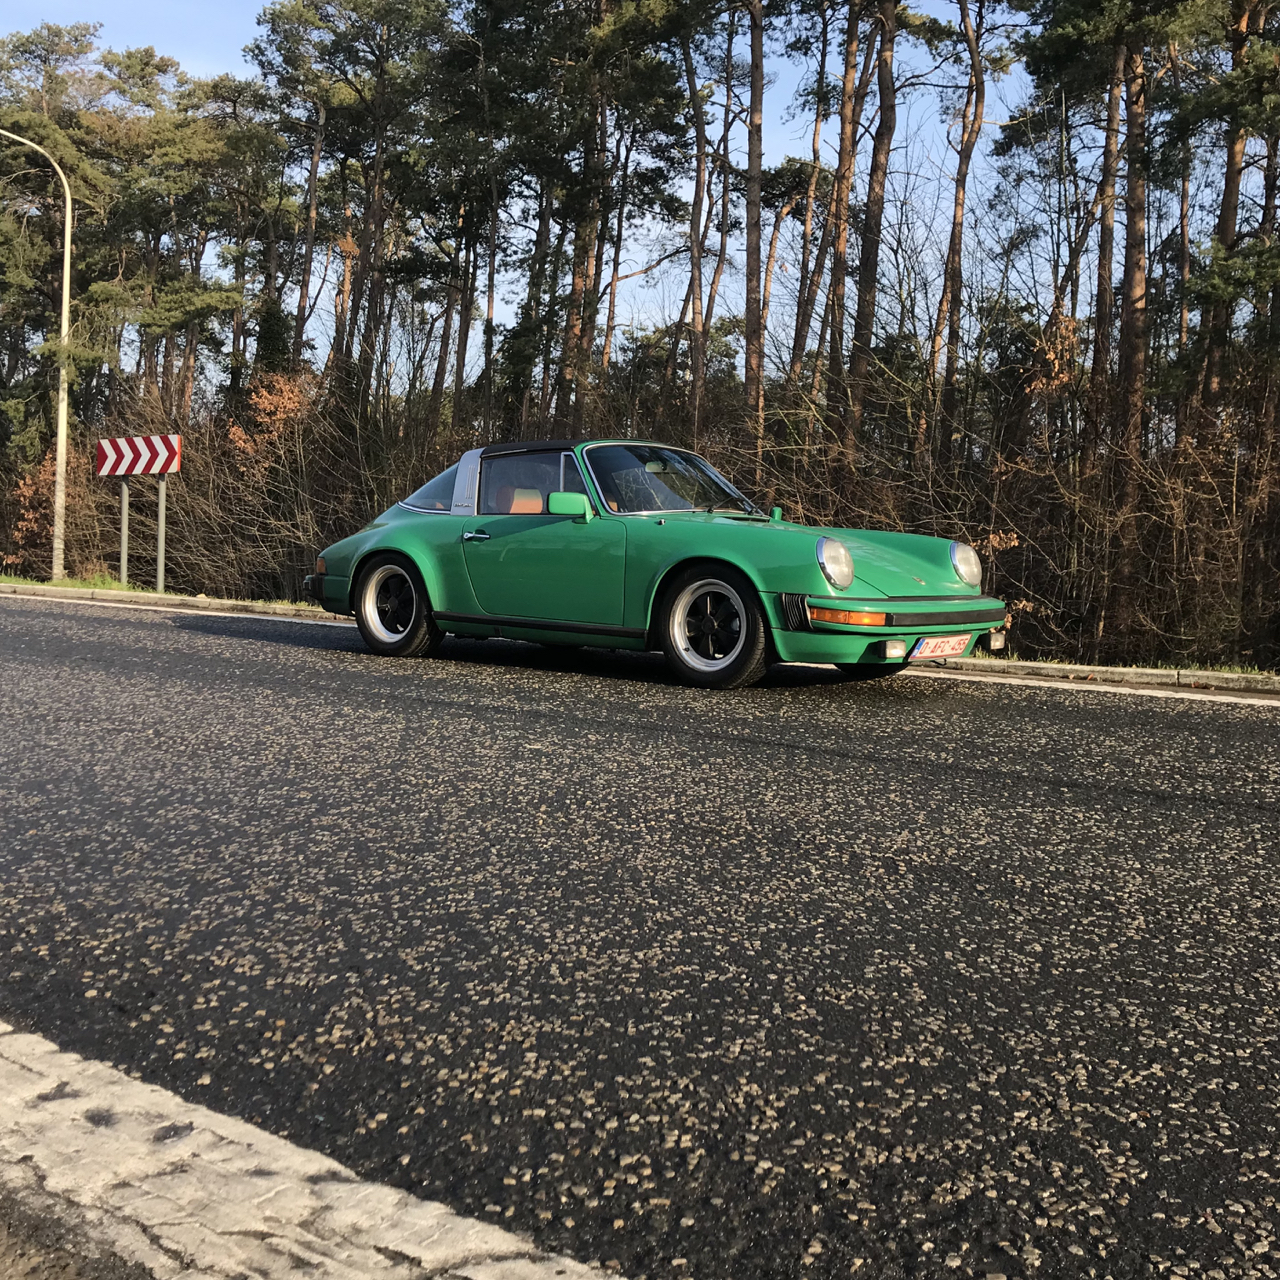 youngtimer.one - Porsche 911 SC targa - Fern Green - 1978 - 1 of 2